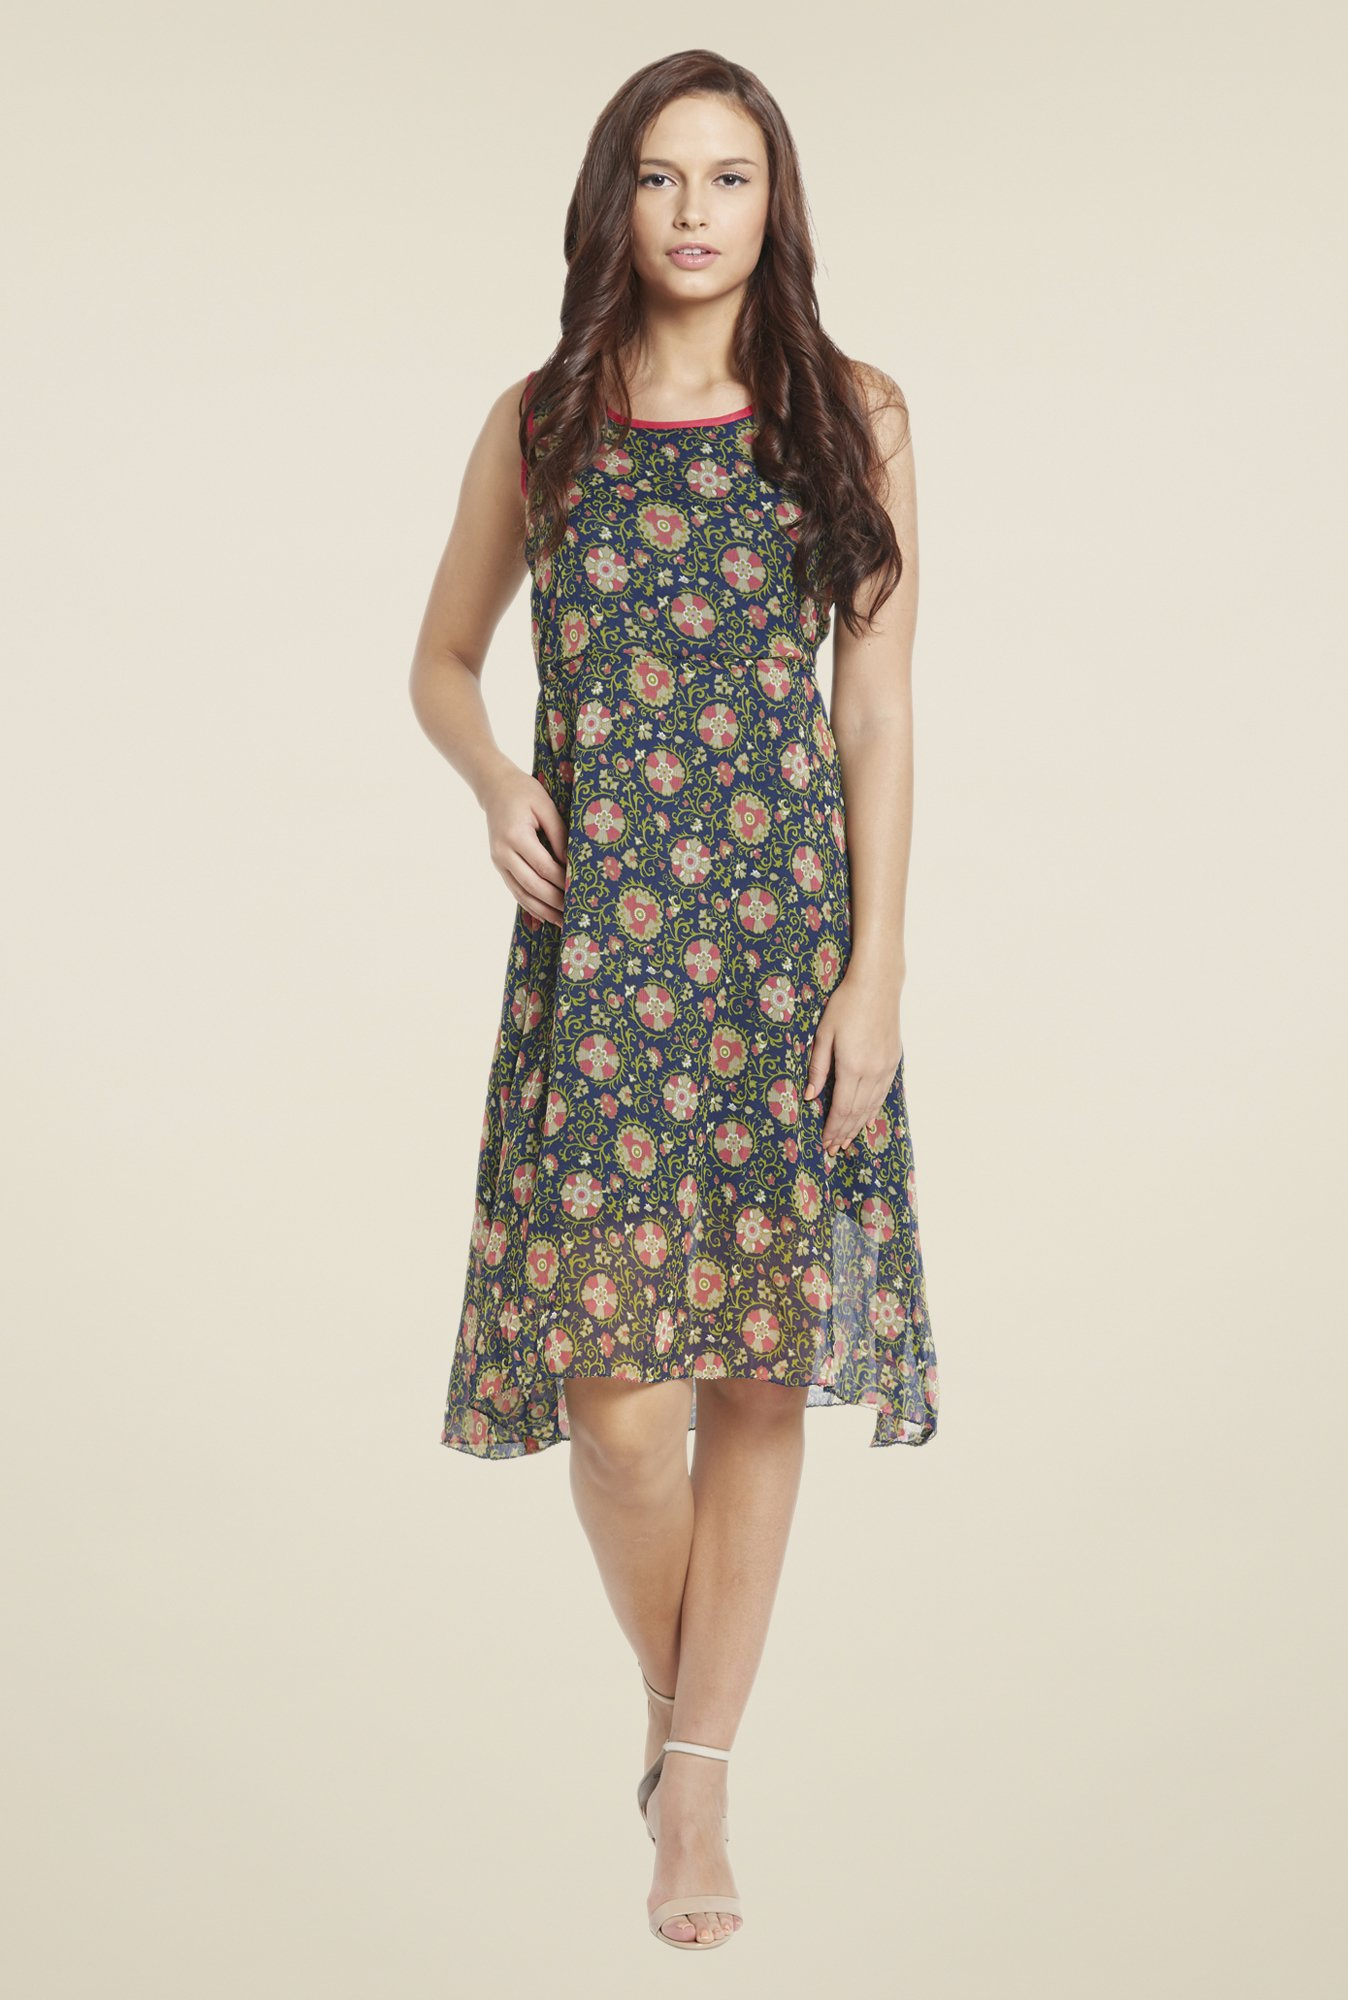 Globus Multicolor Floral Print Dress